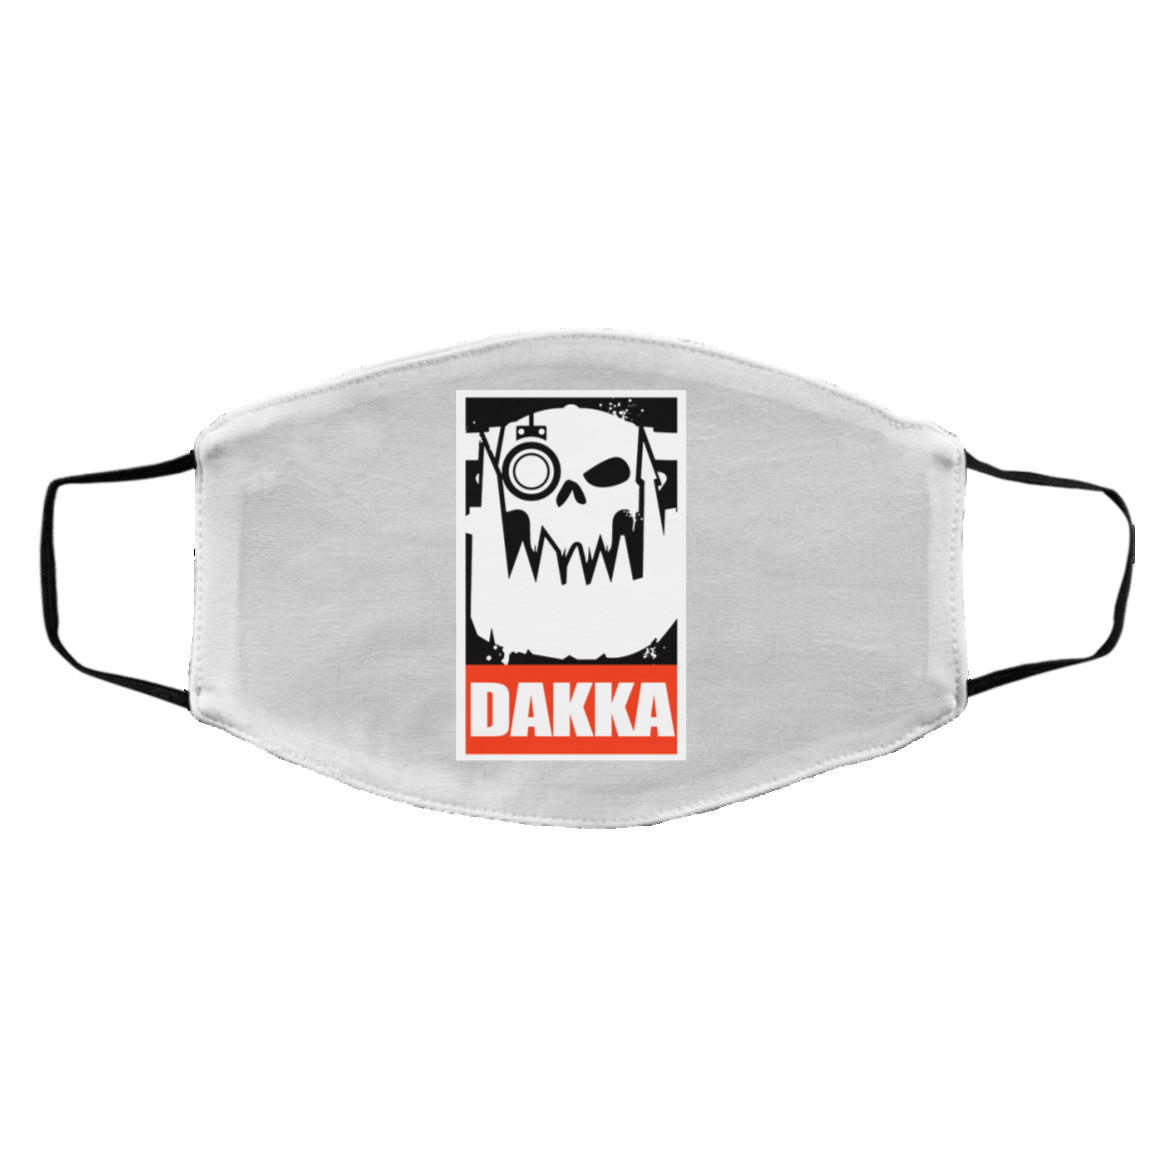 Orks Dakka Tabletop Wargaming And Miniatures Addict Face Mask 1274-13170-88768011-59058 - Tee Ript